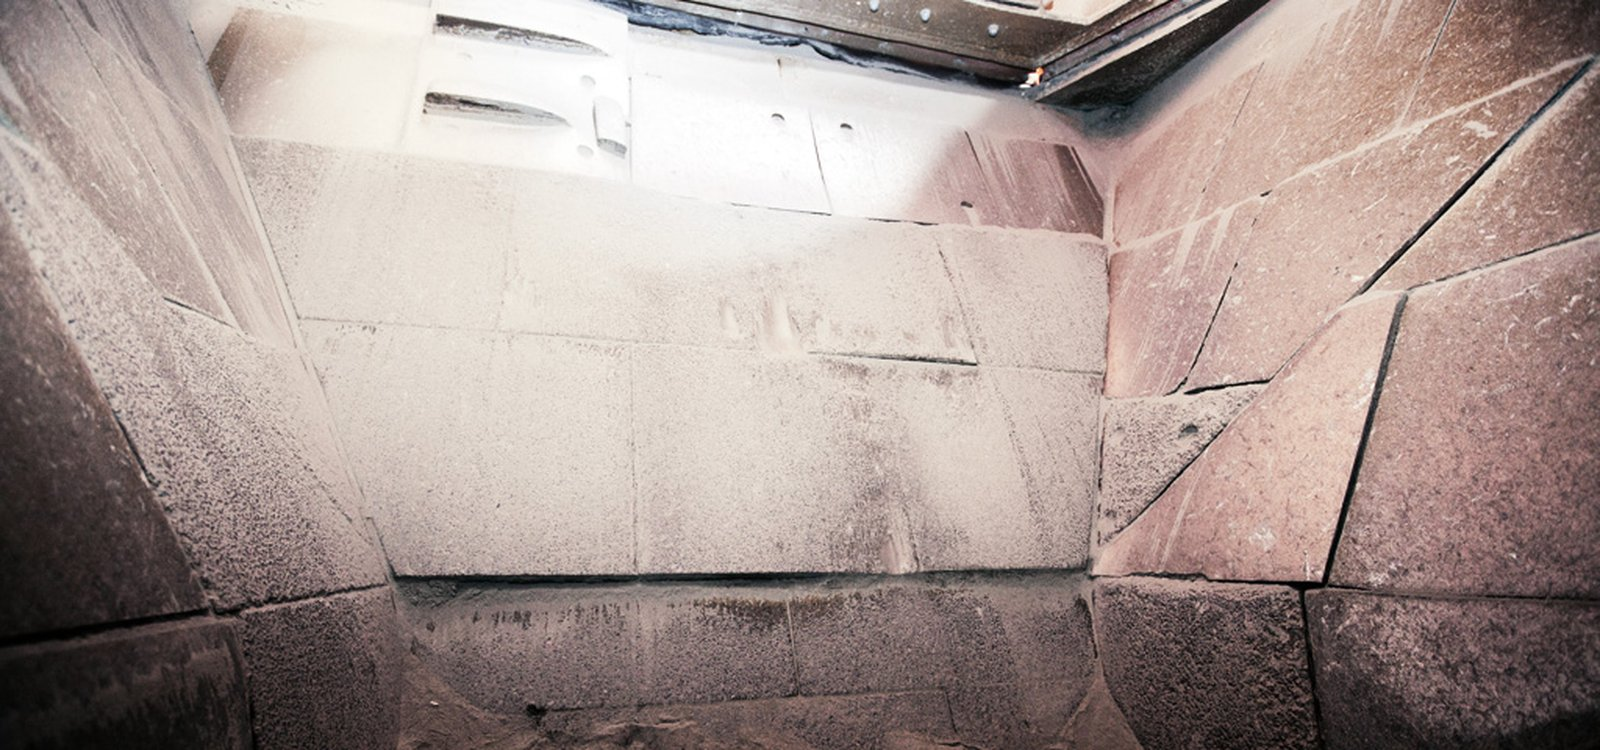 <p>In field tests, Sandvik HX900 wear plates withstood 250,000 tonnes of material before requiring replacement, compared to around 60,000 tonnes for other materials.</p>